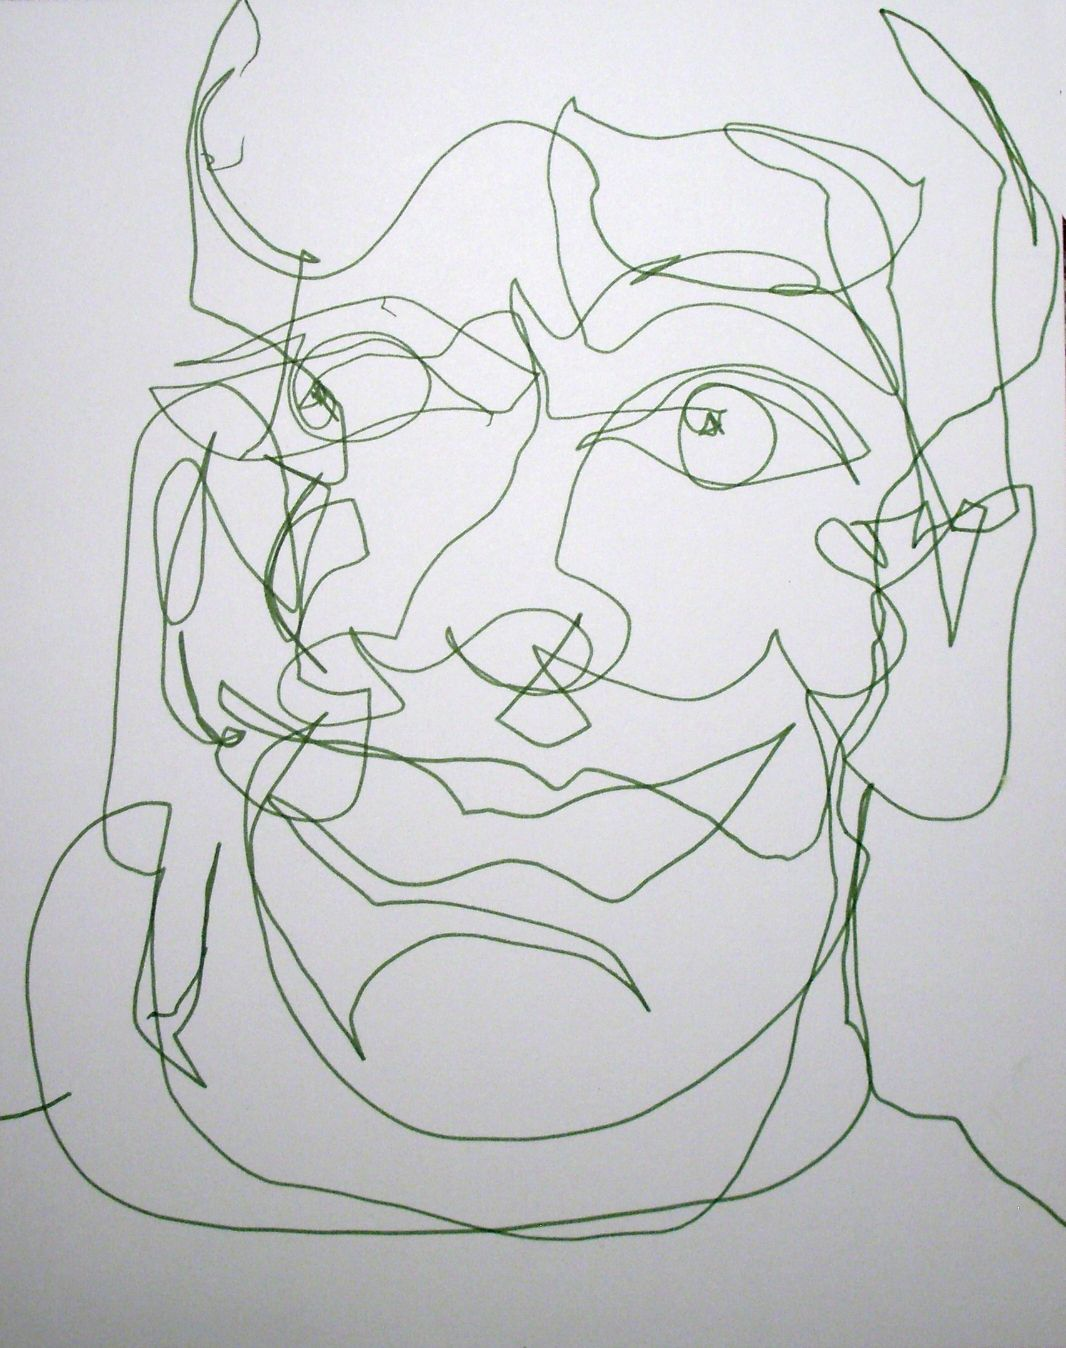 Contour Line Drawing Leonardo Da Vinci : Image julia kay i can t express enough how much value